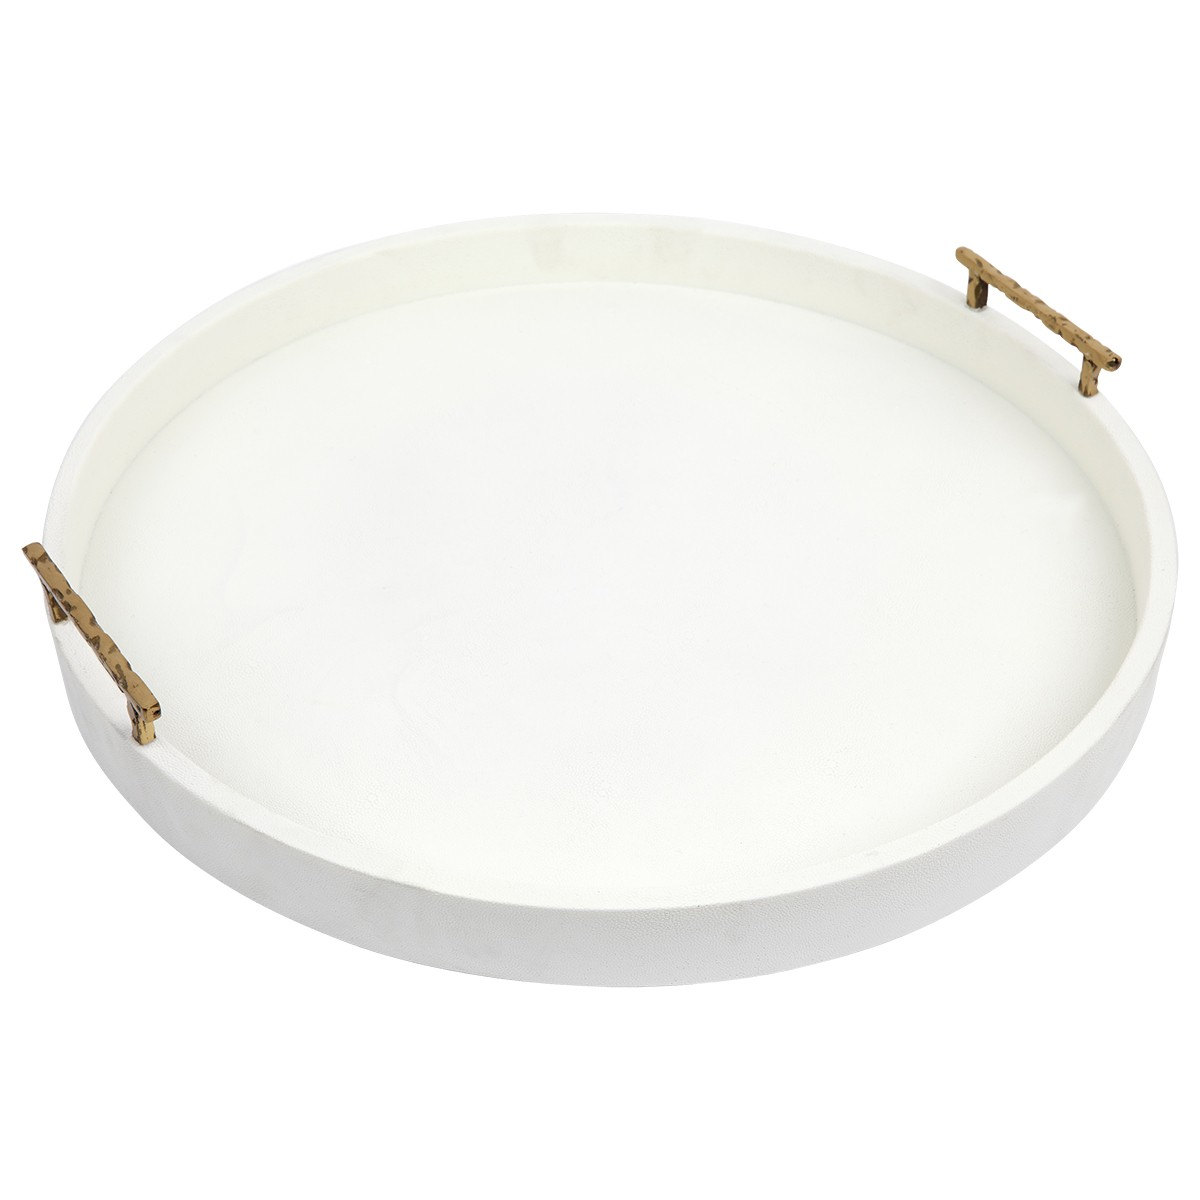 Palm Springs Round Tray, Large, Off White